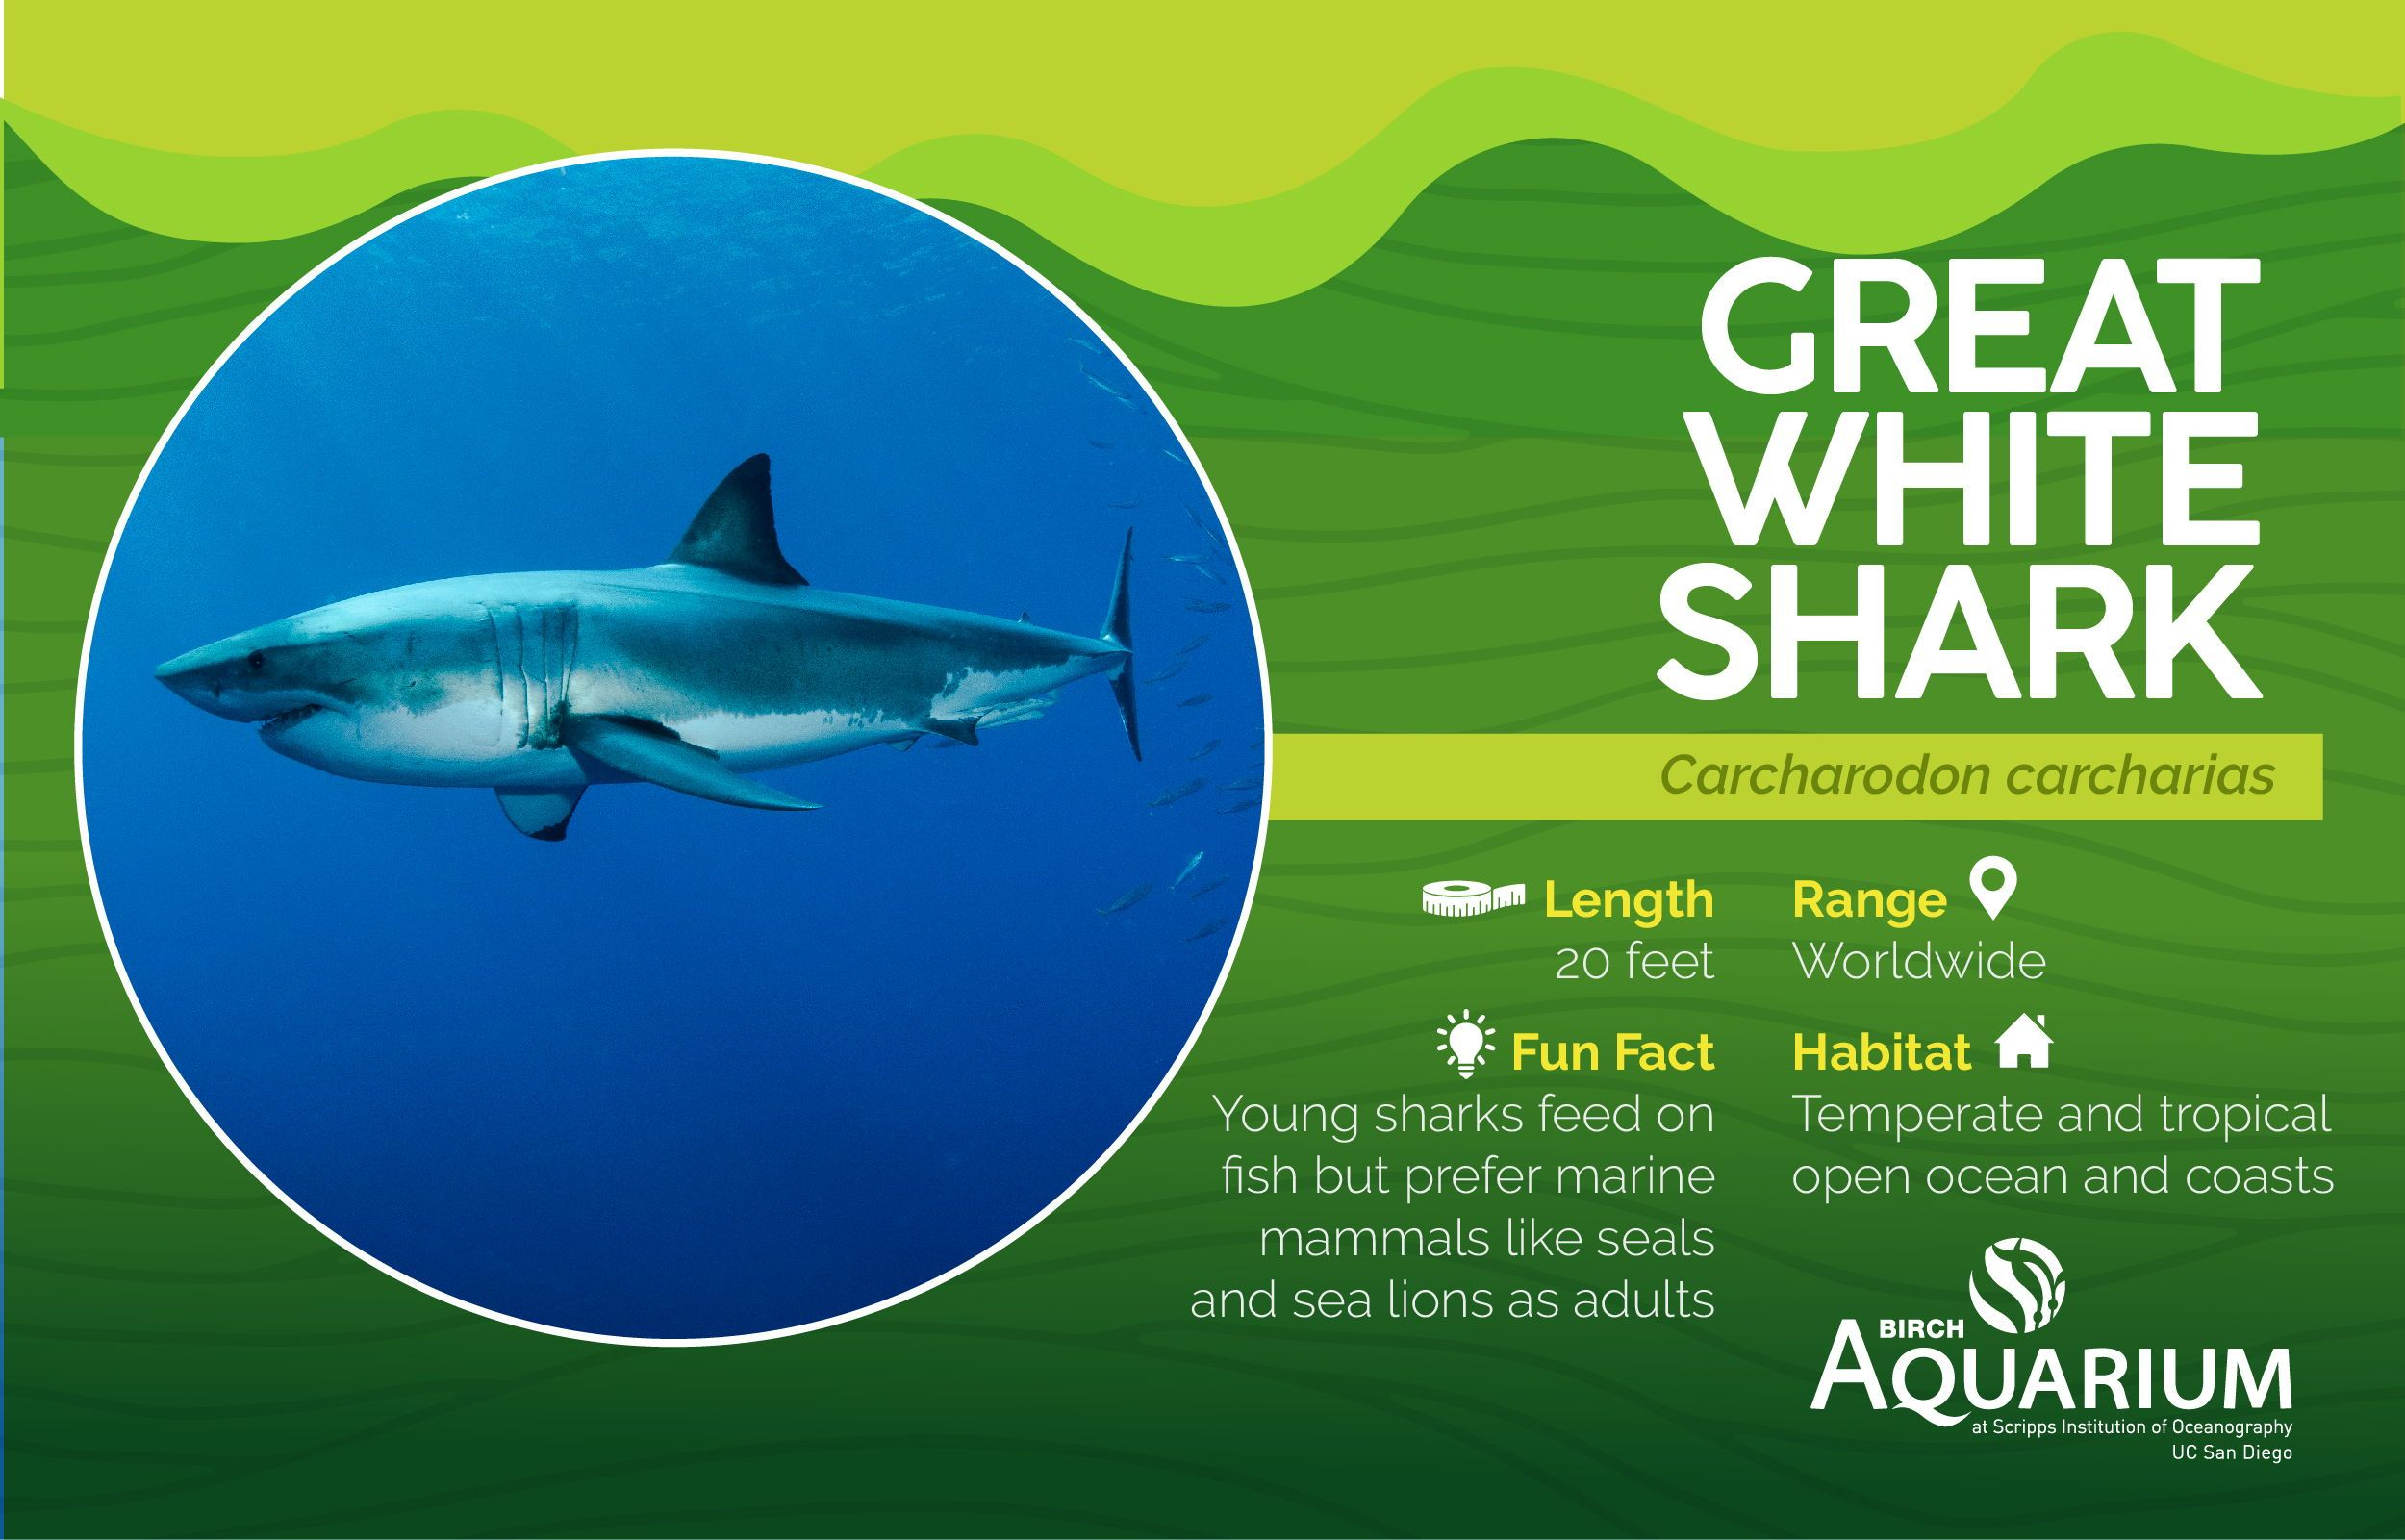 It S Sharkweek A Few Fun Facts About The Great White